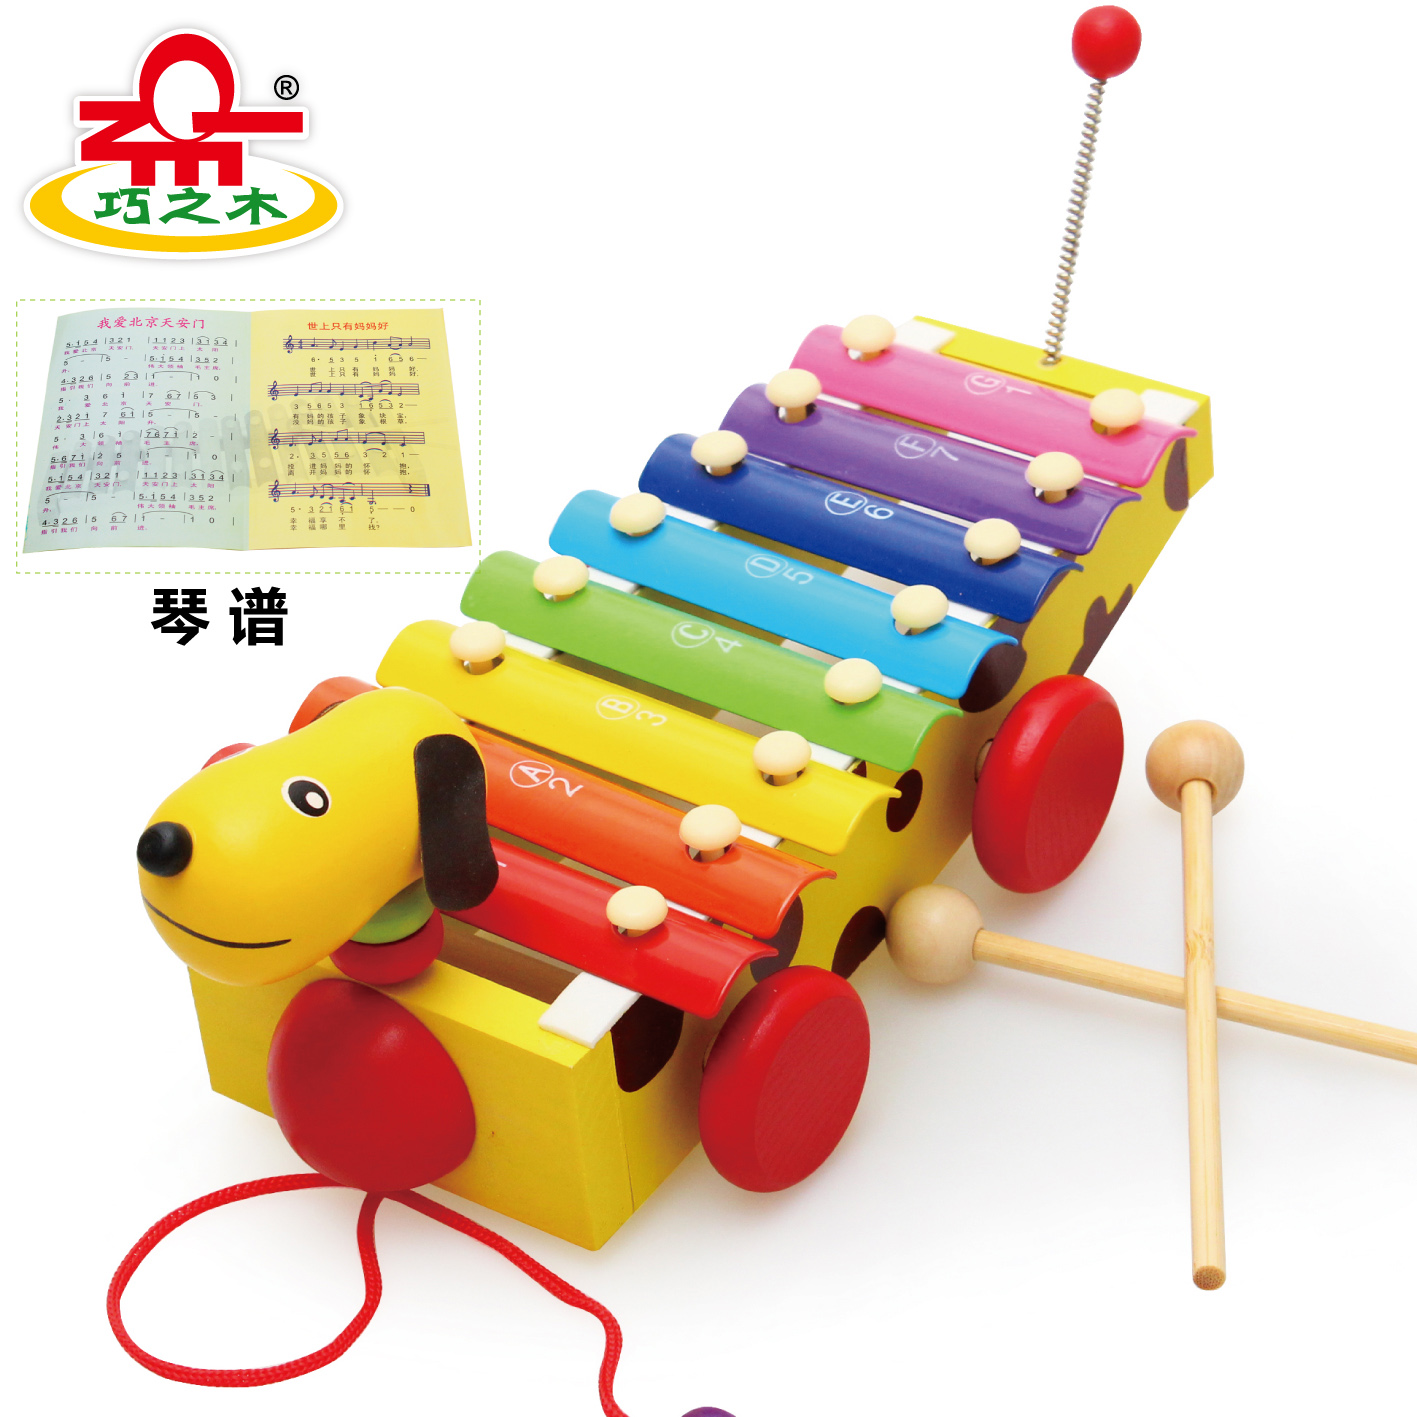 Toys For 0 2 Years Old : Usd child early learning piano to years old